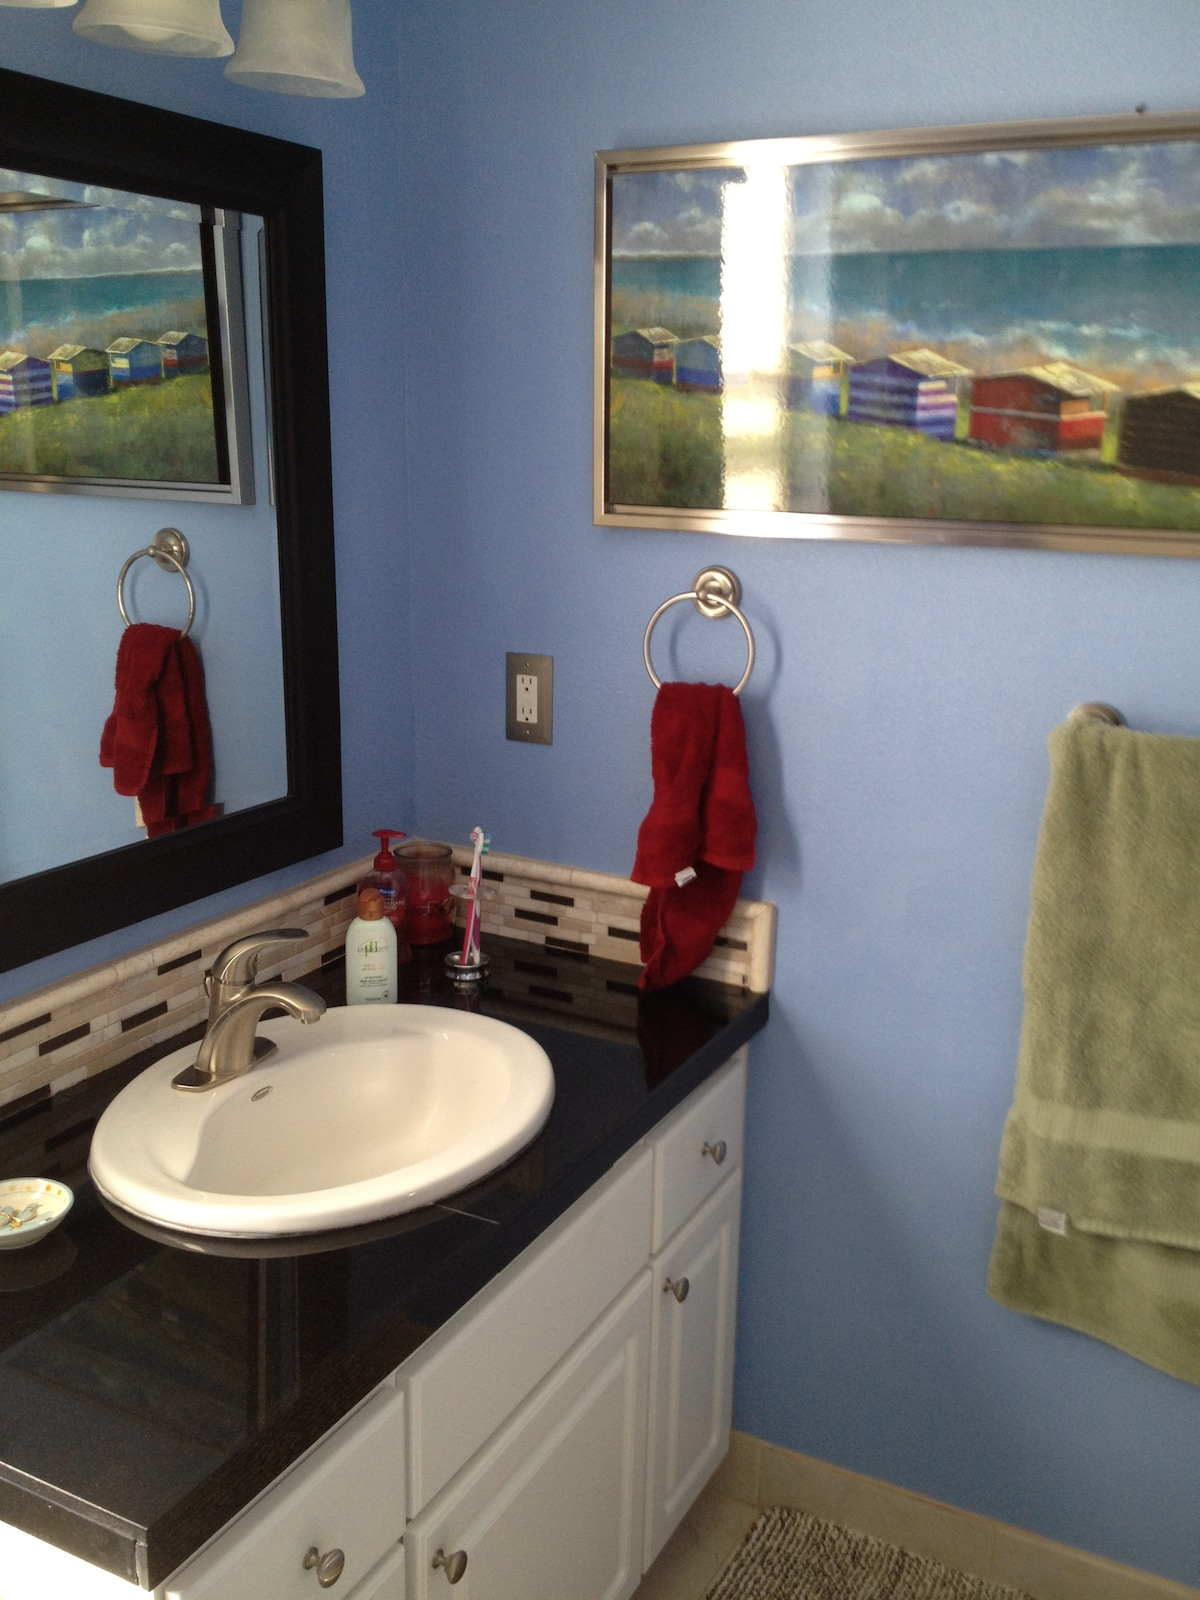 Private bath with shower and personal amenities provided